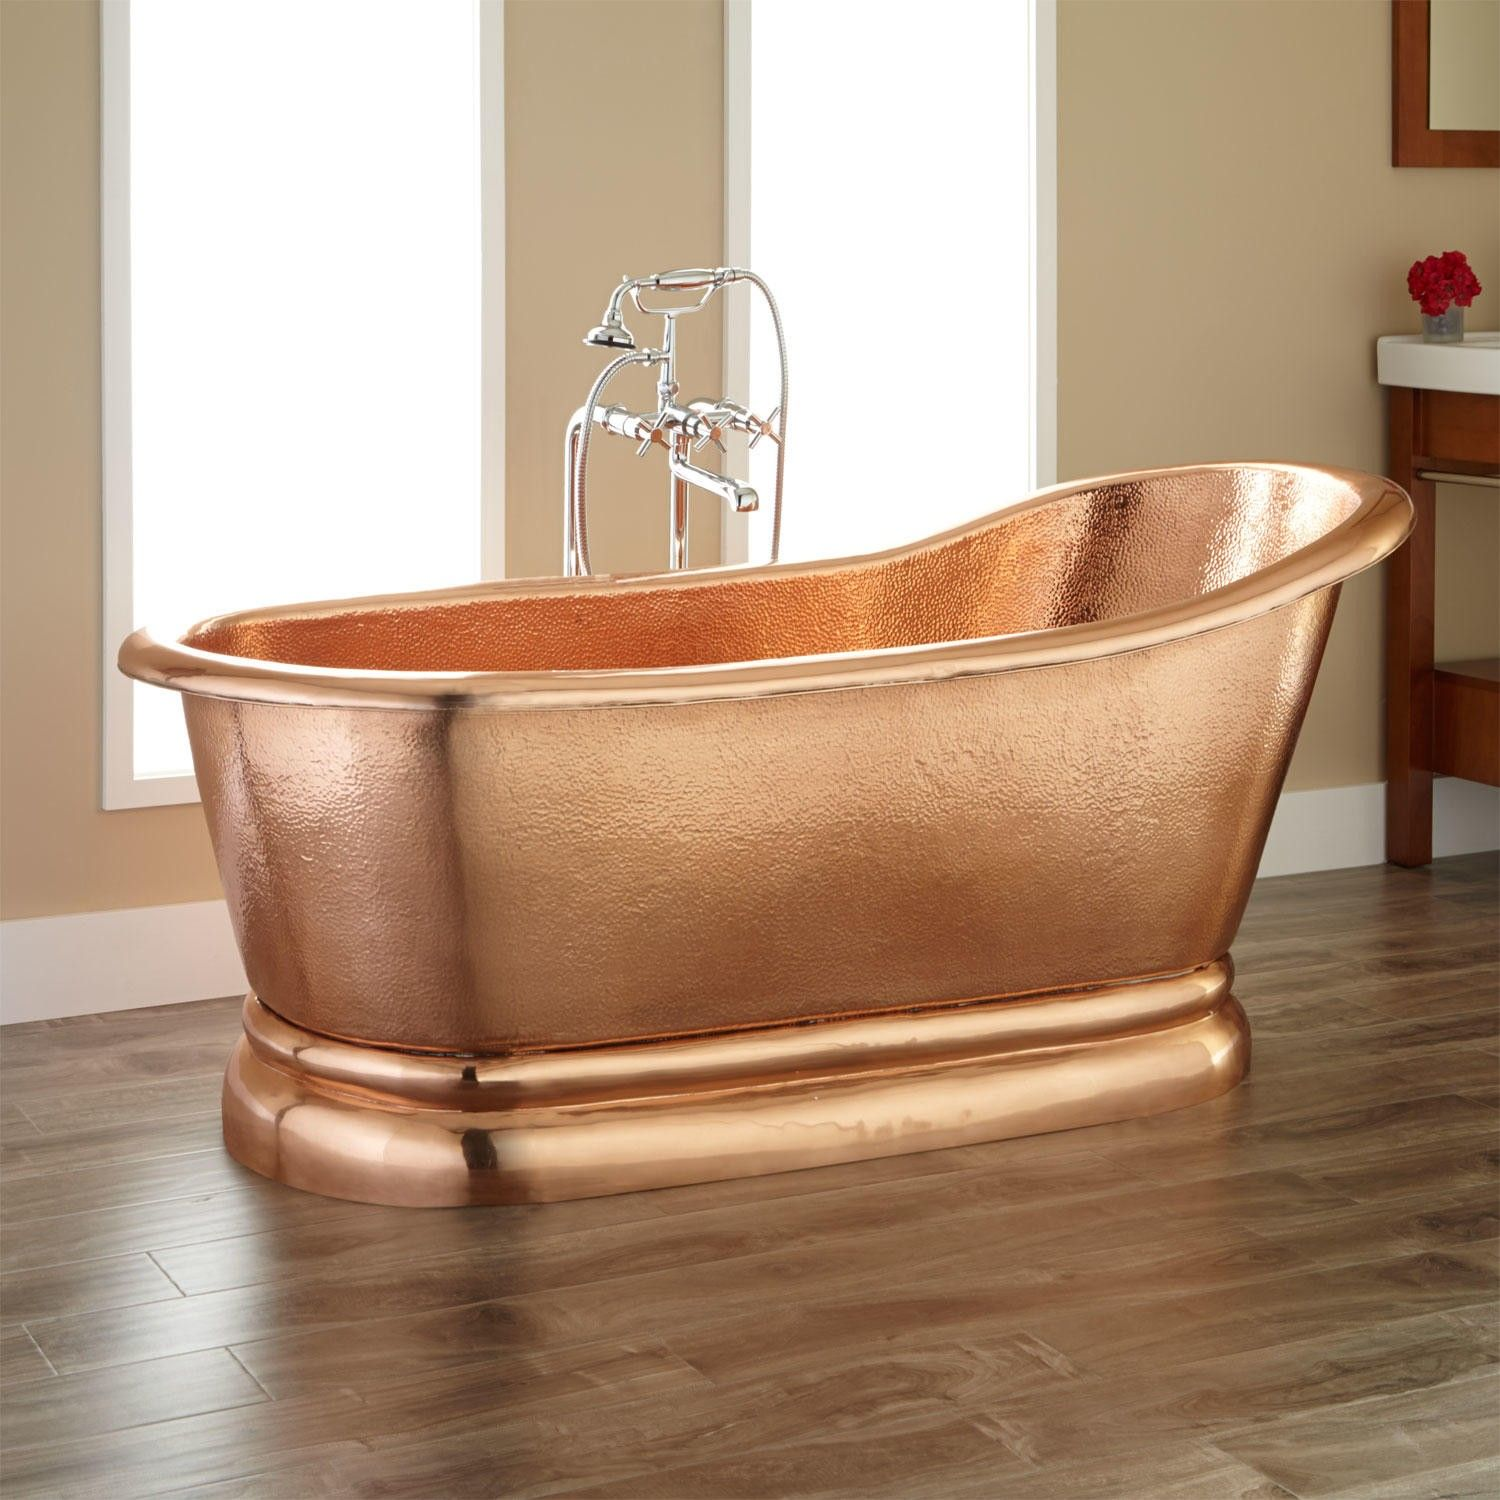 Copper Bathtubs: Turning Your Bathroom Into An Antique Paradise